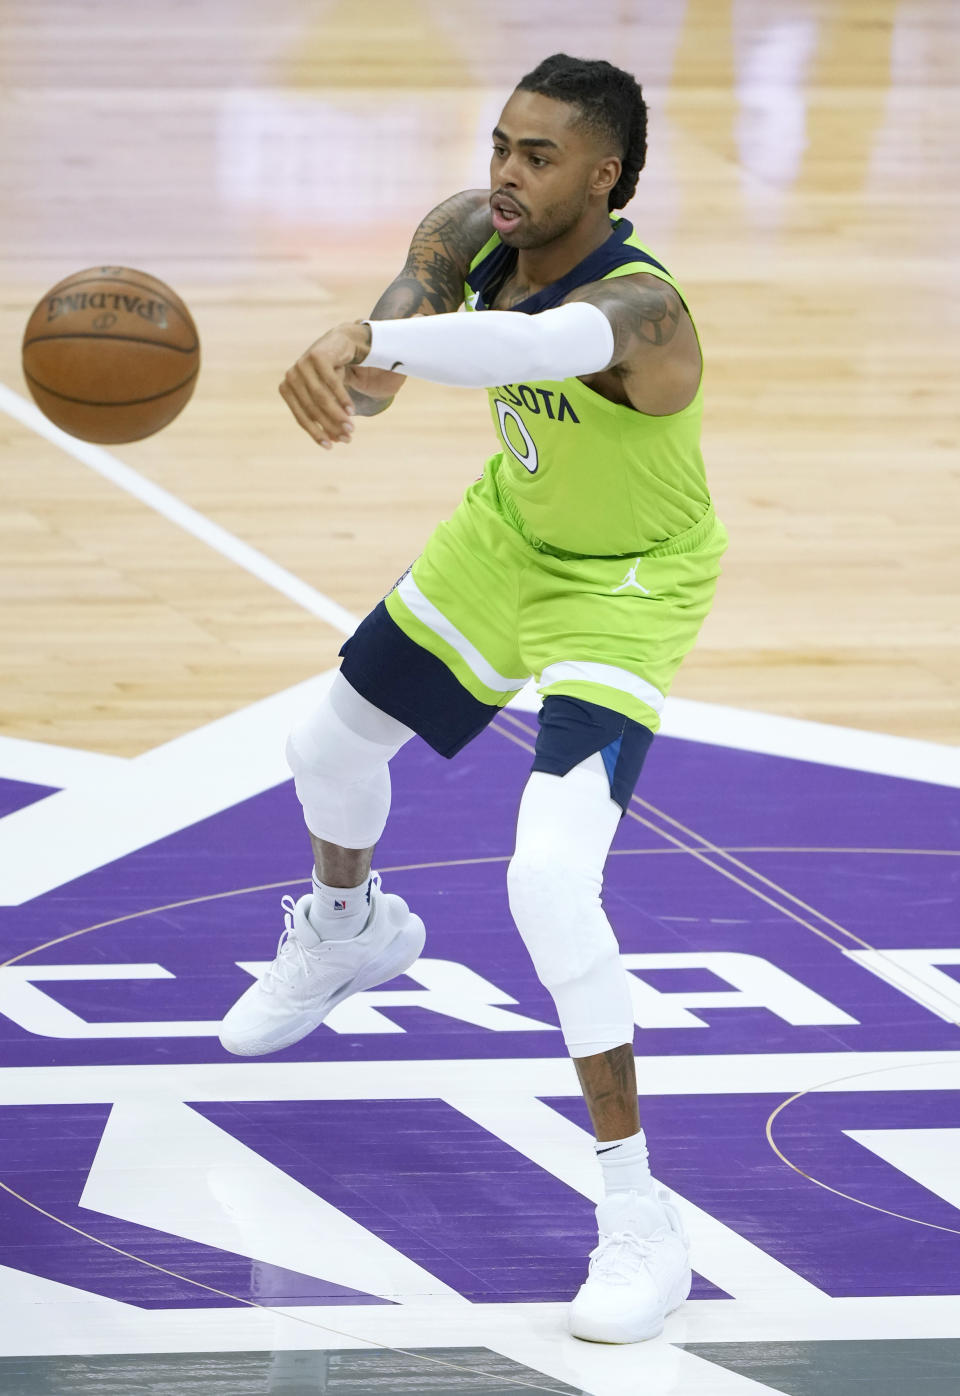 D'Angelo Russell passes the ball for the Minnesota Timberwolves.